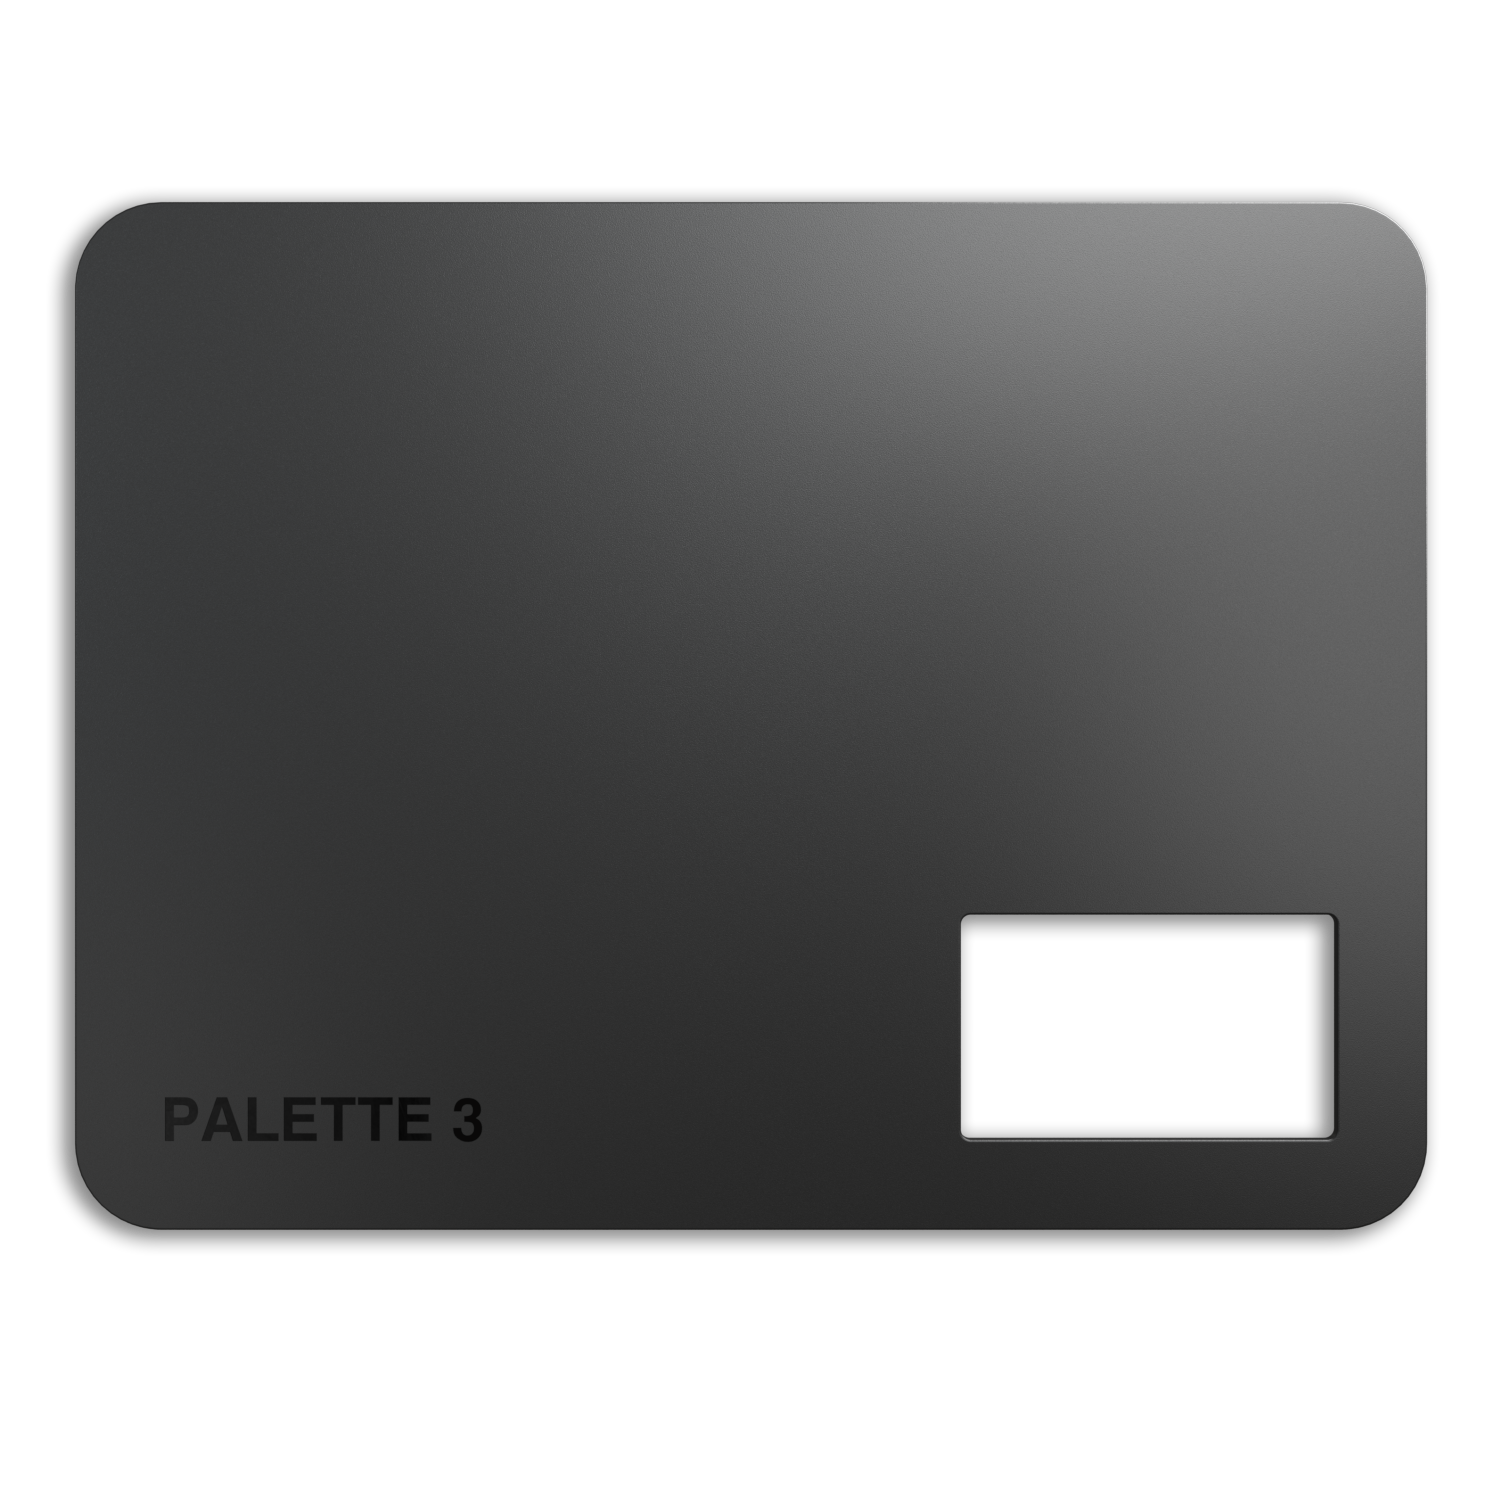 Palette 3 Pro Moving Image